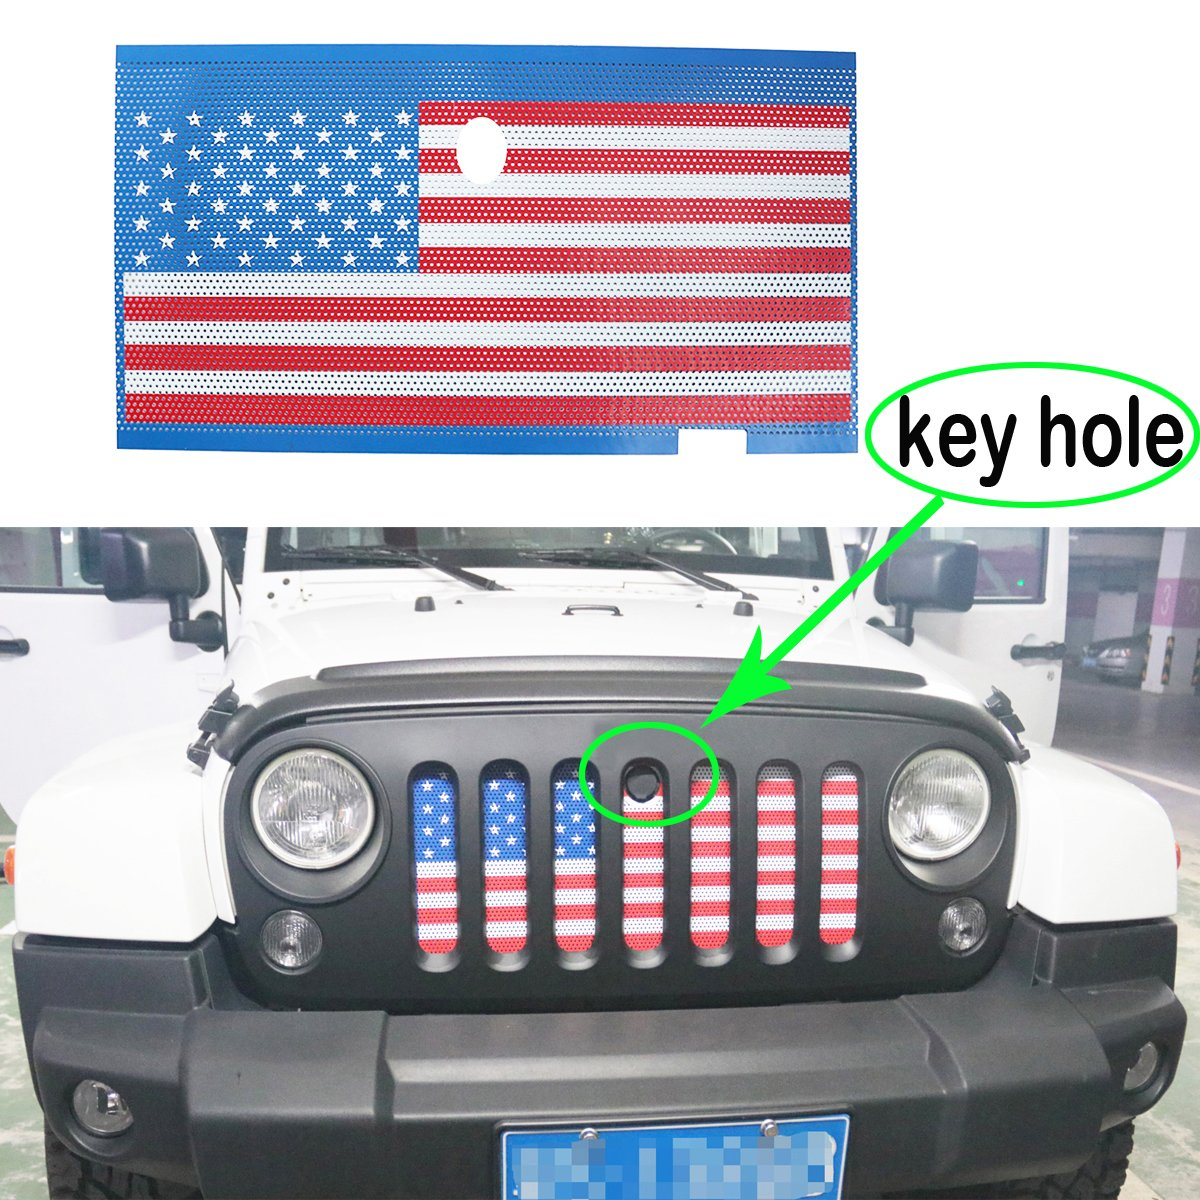 MOEBULB American Flag Steel Front Grill Insert Mesh Grille for 2007-2017 Jeep Wrangler JK 2/4 Door (with Key Hole)